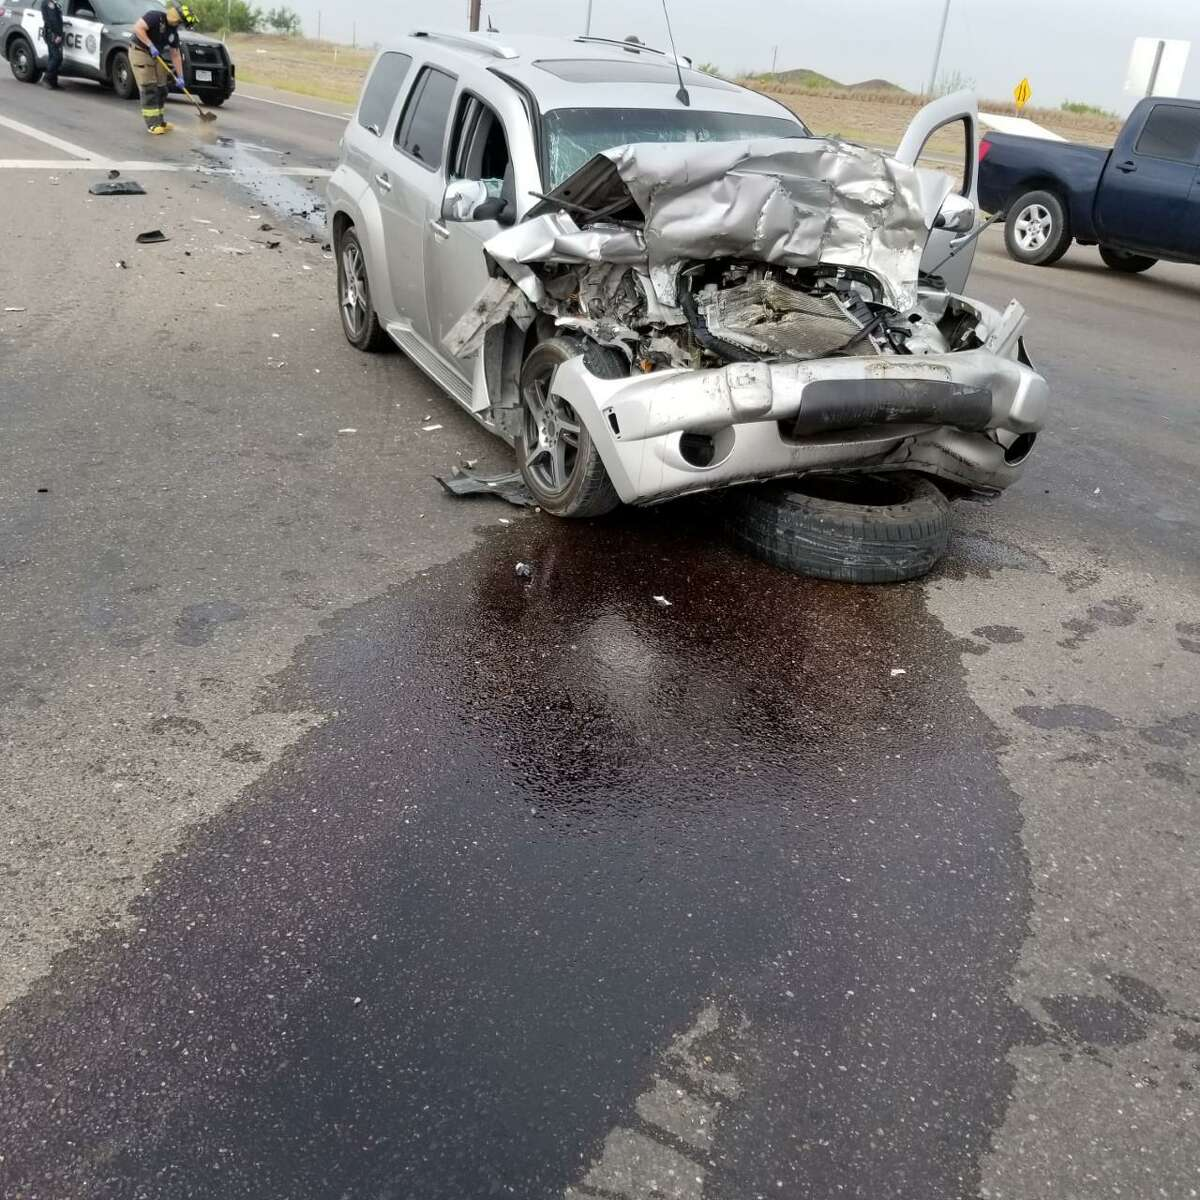 Laredo Fire Department crews said they took four people to Doctors Hospital and Laredo Medical Center after a crash reported in south Laredo.